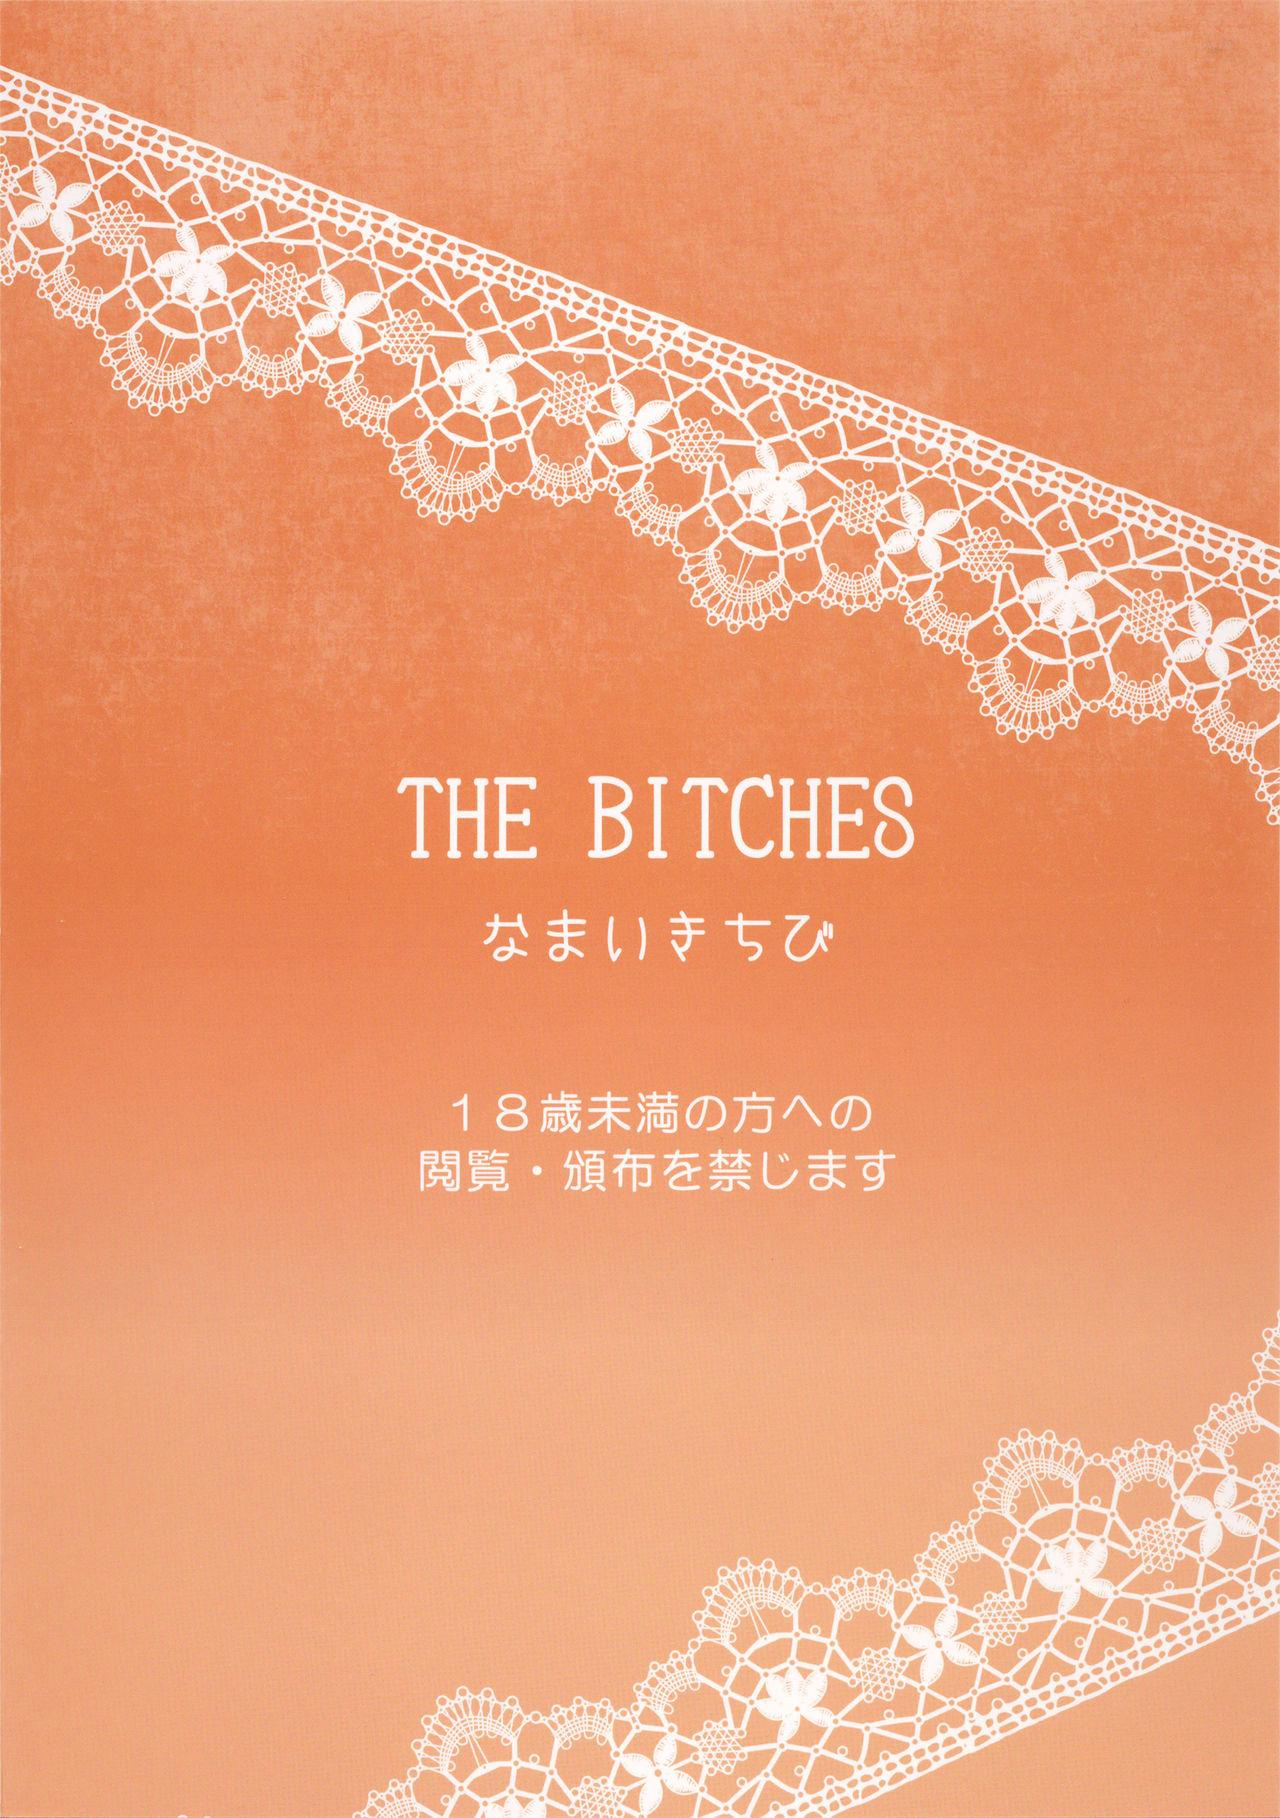 THE BITCHES 29